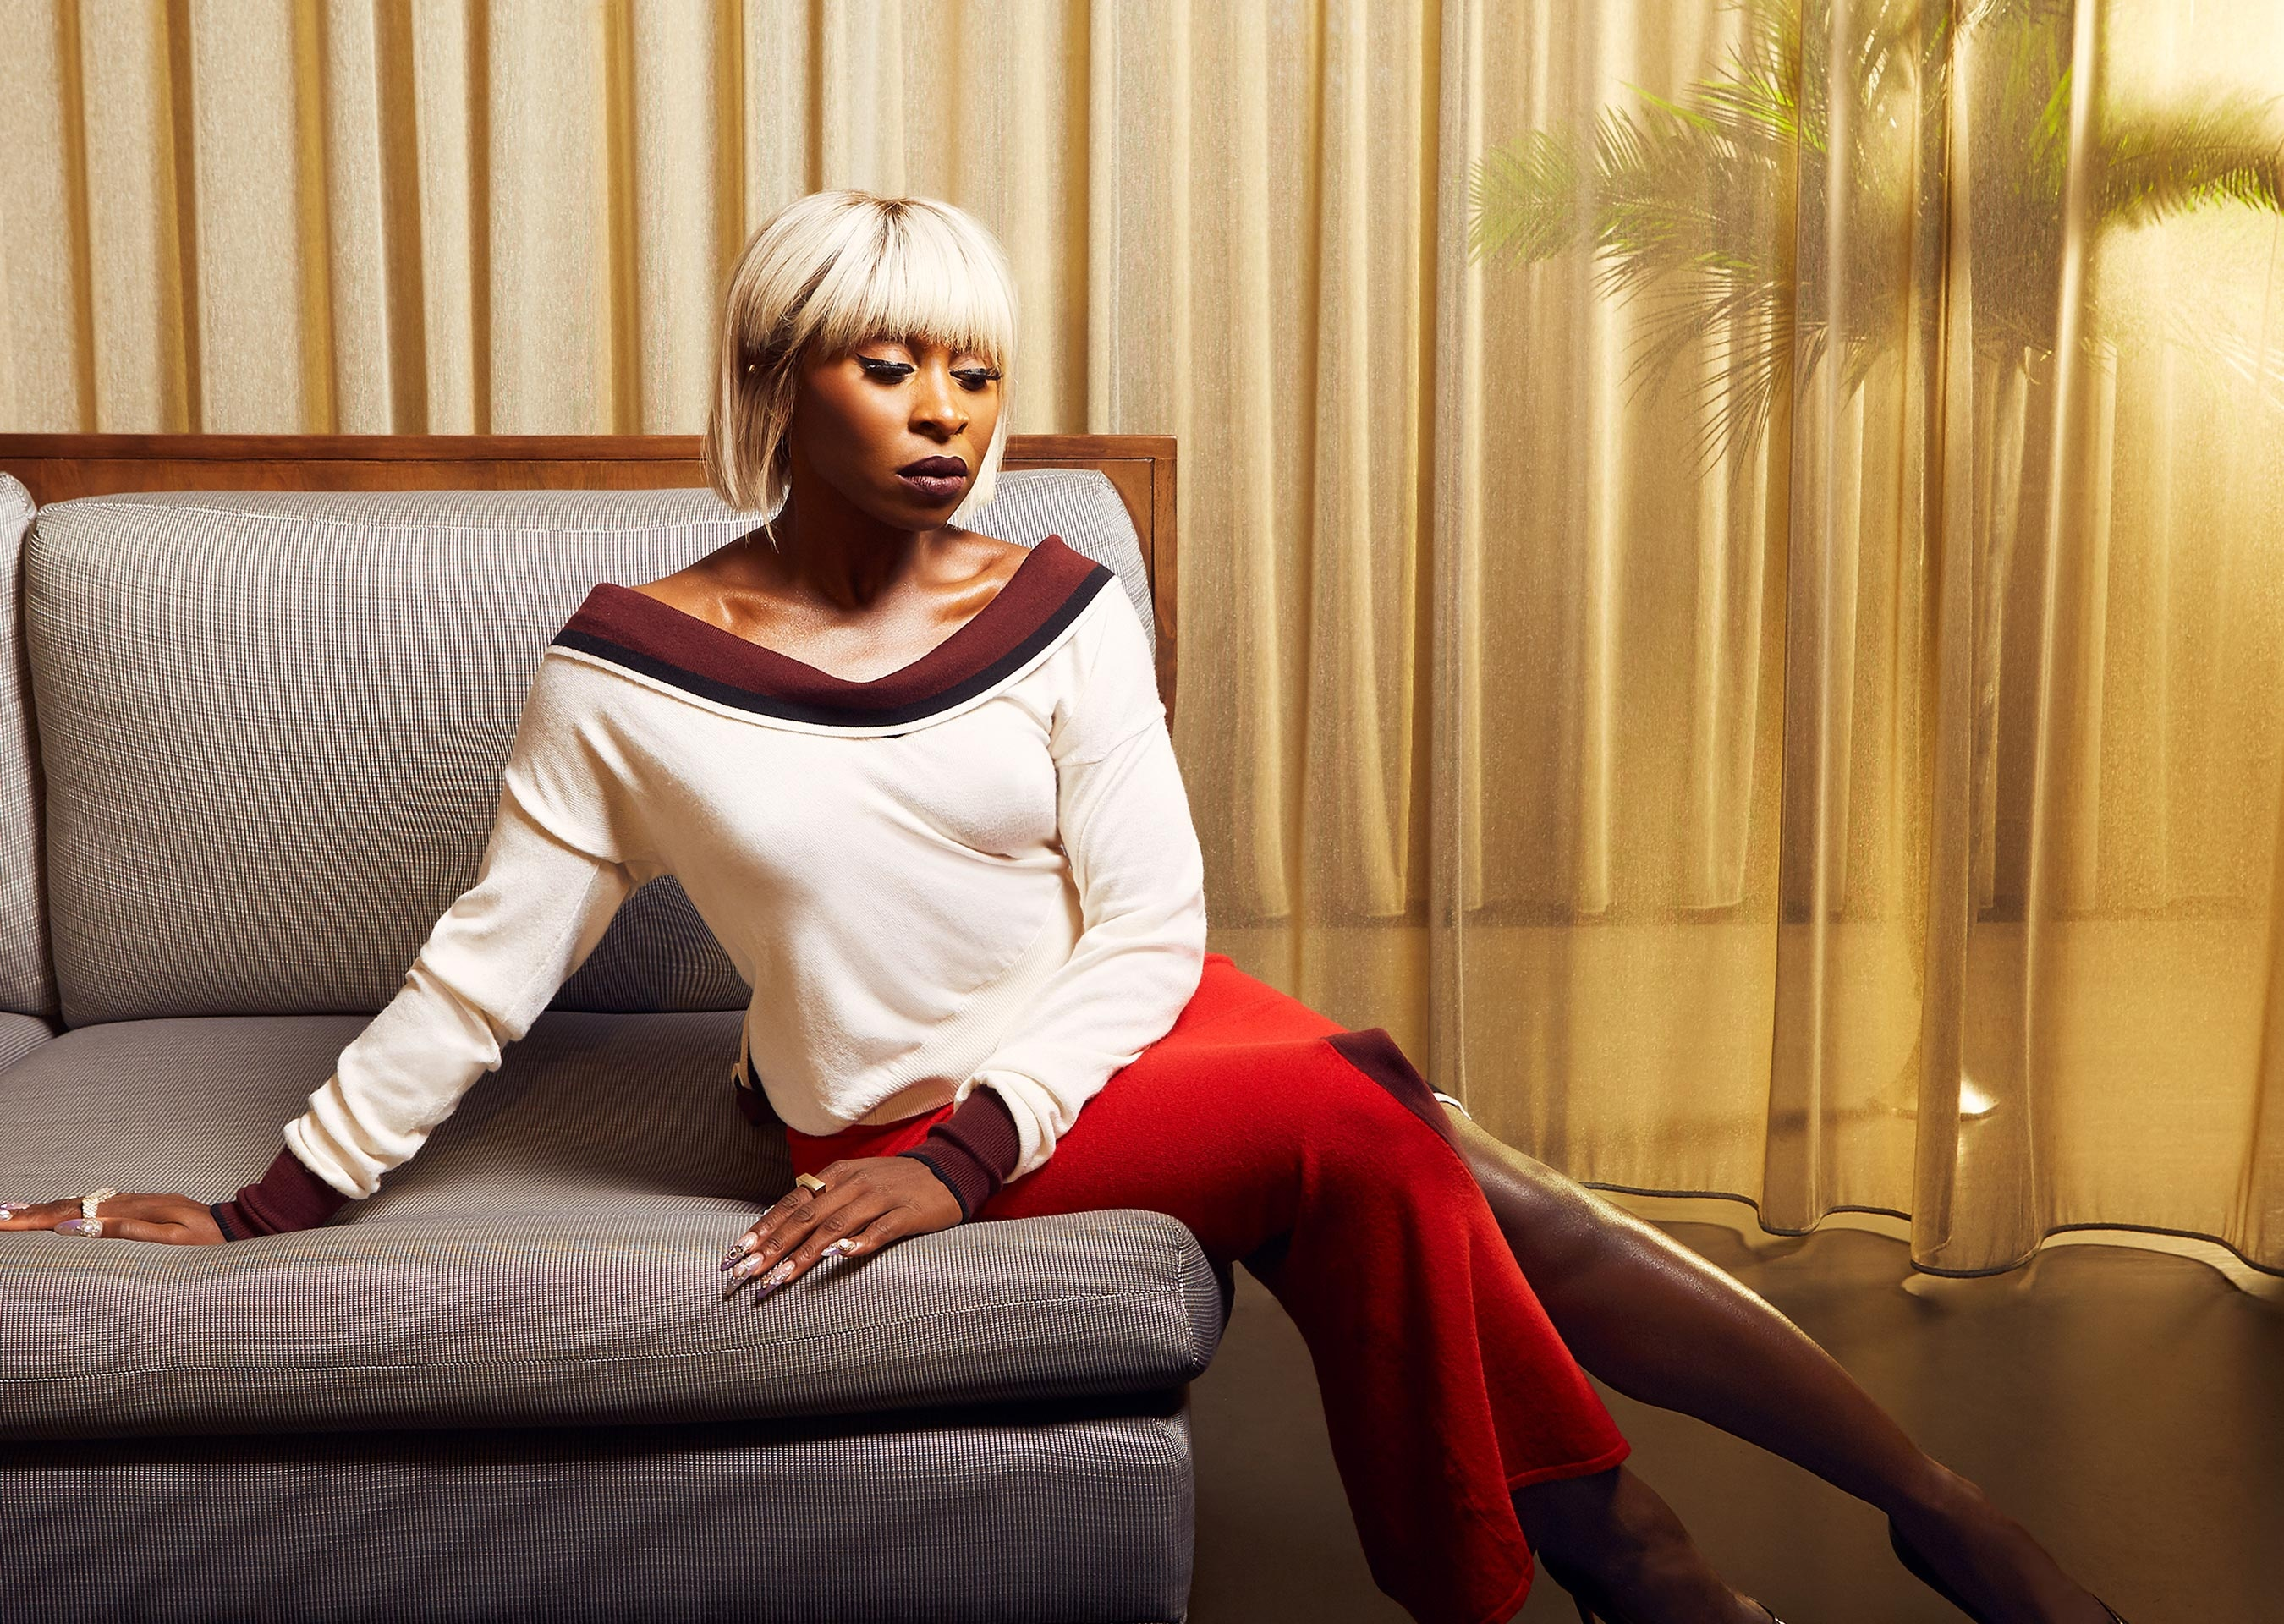 Cynthia Erivo: An Education